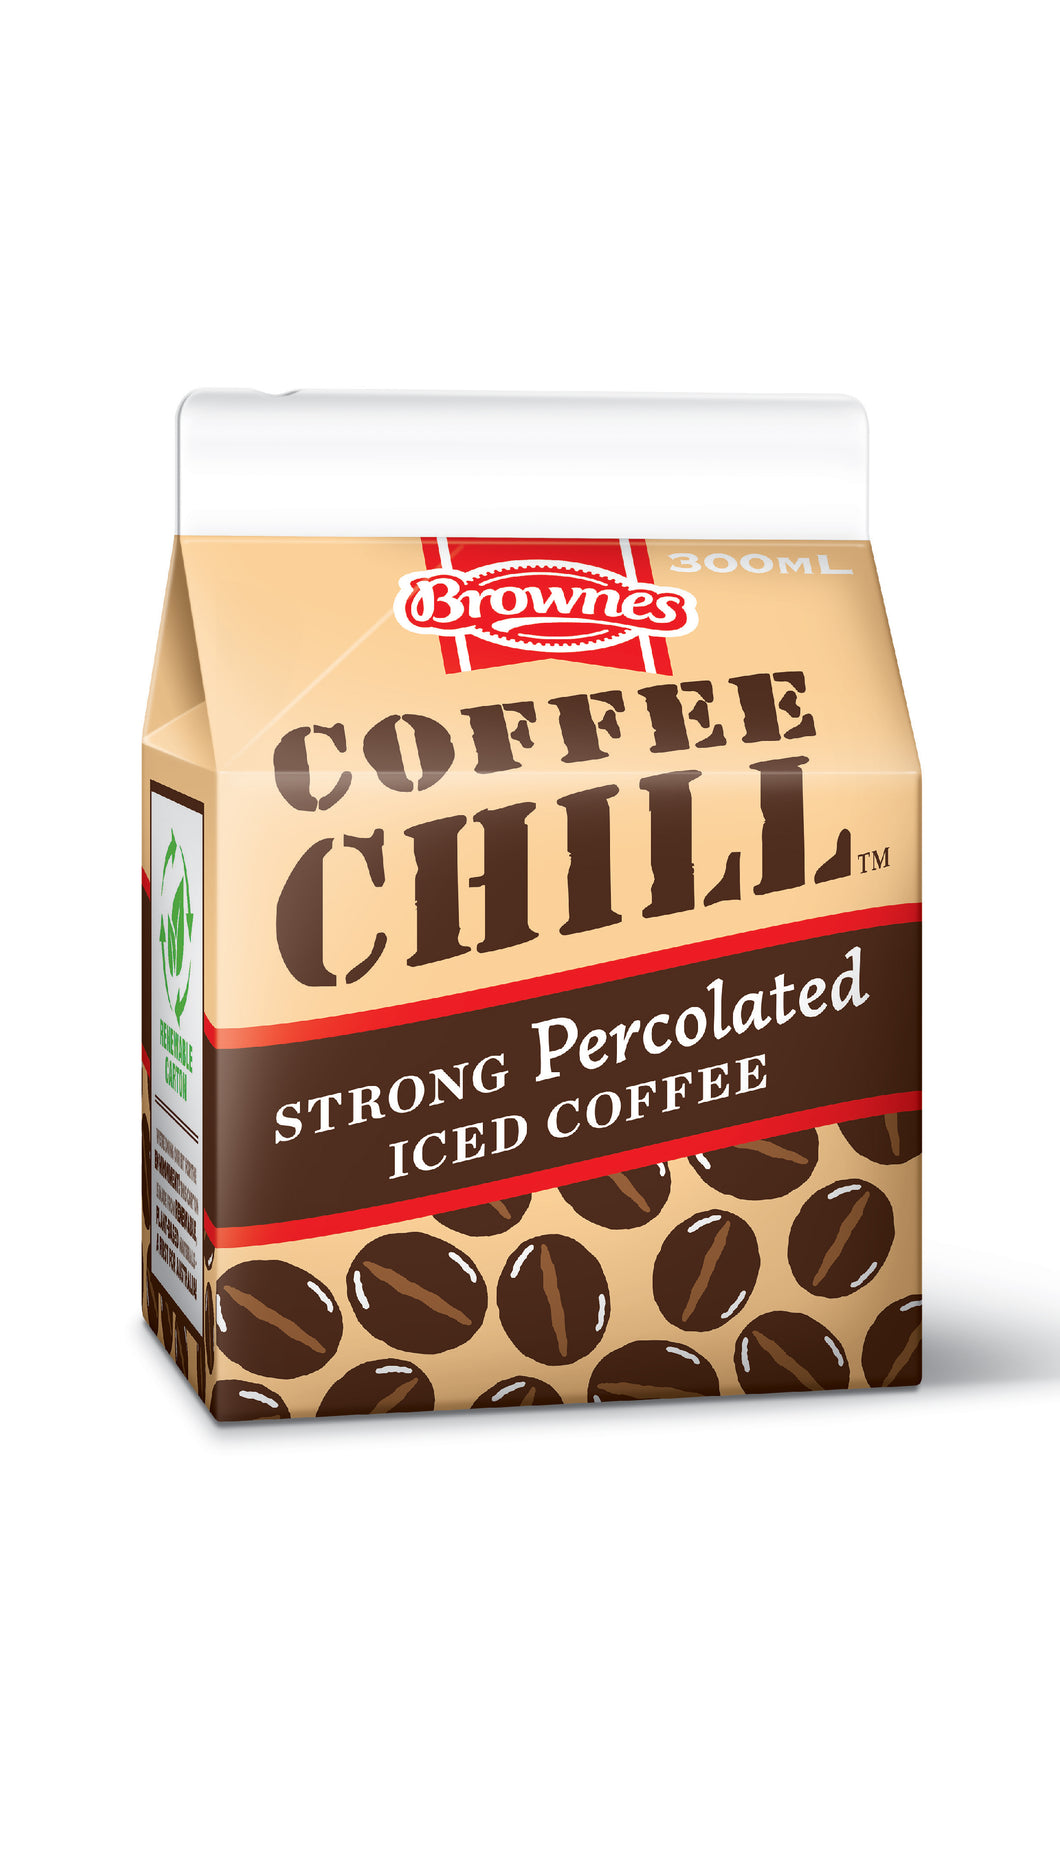 Brownes Coffee CHILL 300mL